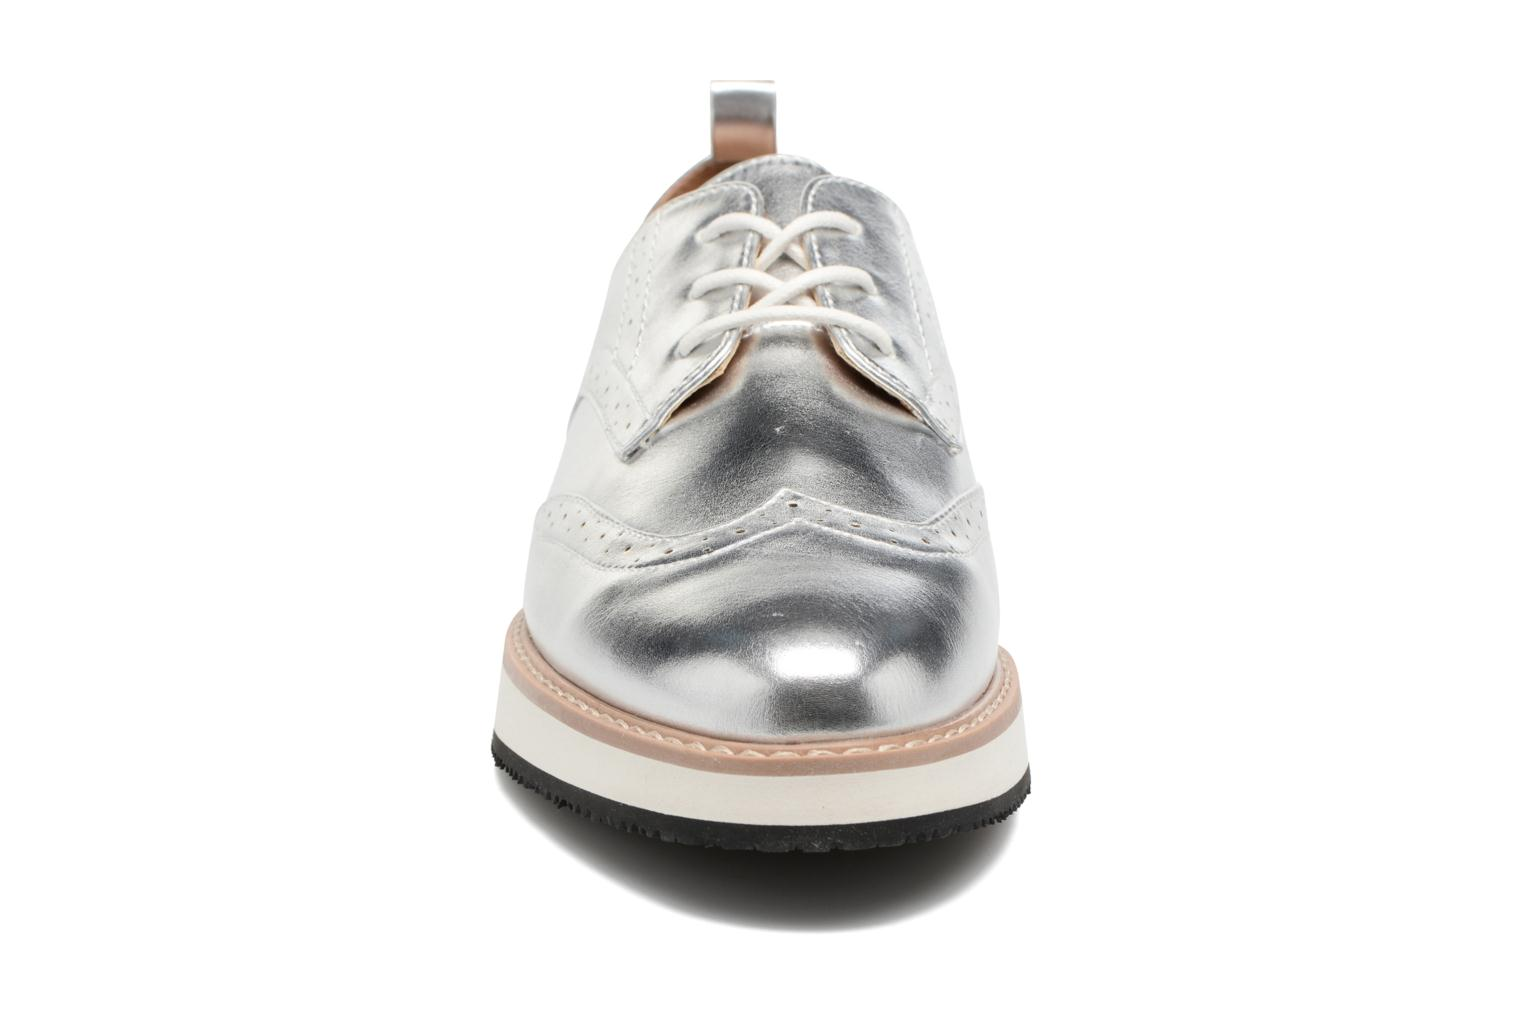 Chaussures à lacets ONLY Tyra pu lace up Argent vue portées chaussures